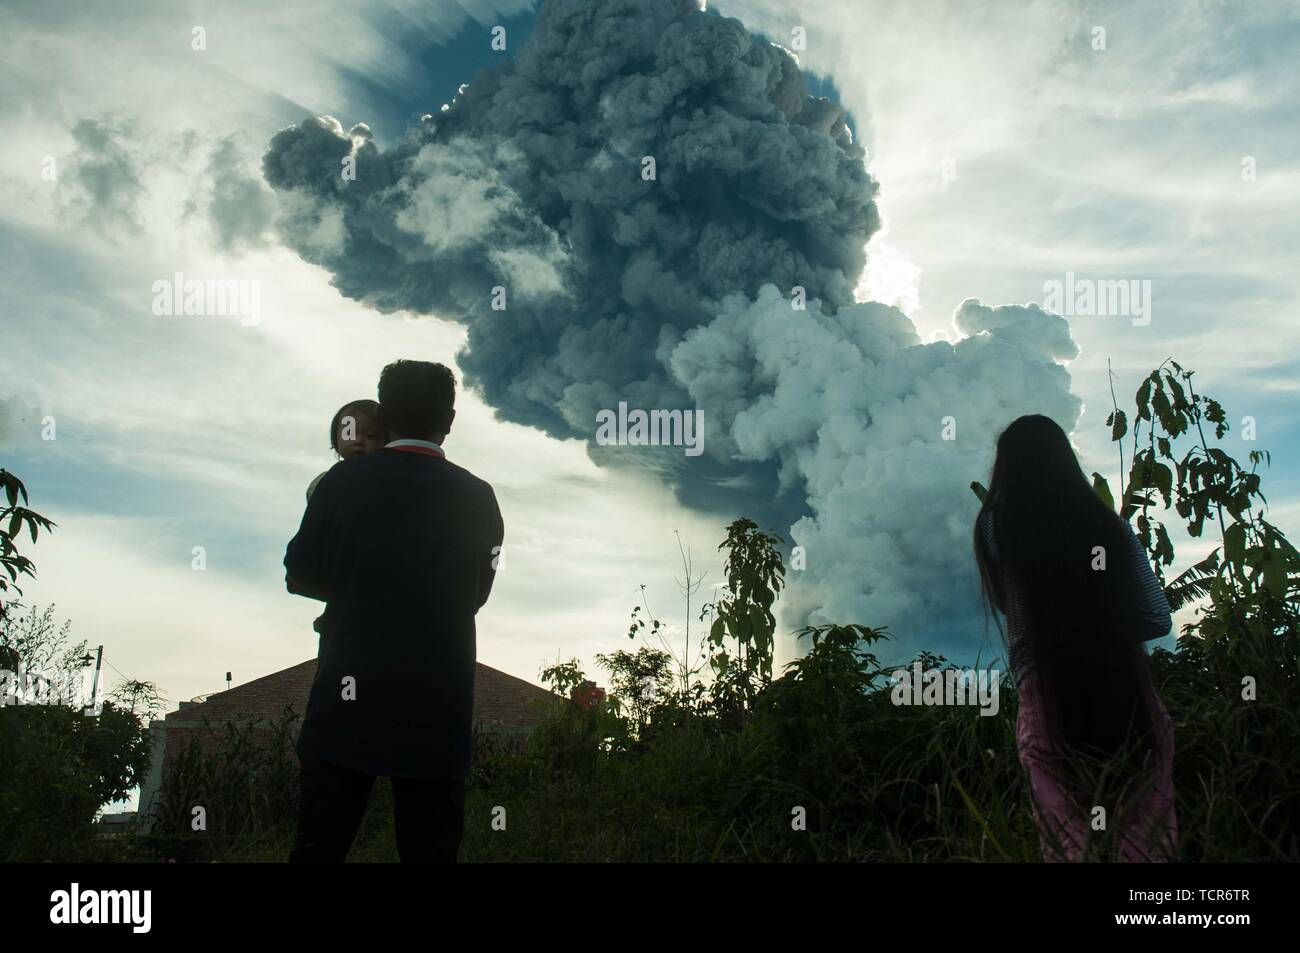 "Sumatra, Indonesia. 09th June, 2019. The eruption of Mt. Sinabung, North Sumatra on June 9, 2019 at 16:28 with the ash column height observed ± 7,000 m above the peak (± 9,460 m above sea level). The ash column was observed to be black with thick intensity leaning southward. Seen from kabanjahe city. ""There was a hot cloud in the 3.5 km southeast and 3 km south and a roar came to the volcano observation post of Sinabung Currently Mount Sinabung is in Status * Level III (Standby)' Said vulcano officer guard from radio communication. Credit: Sabirin Manurung/Pacific Press/Alamy Live News Credit: Stock Photo"